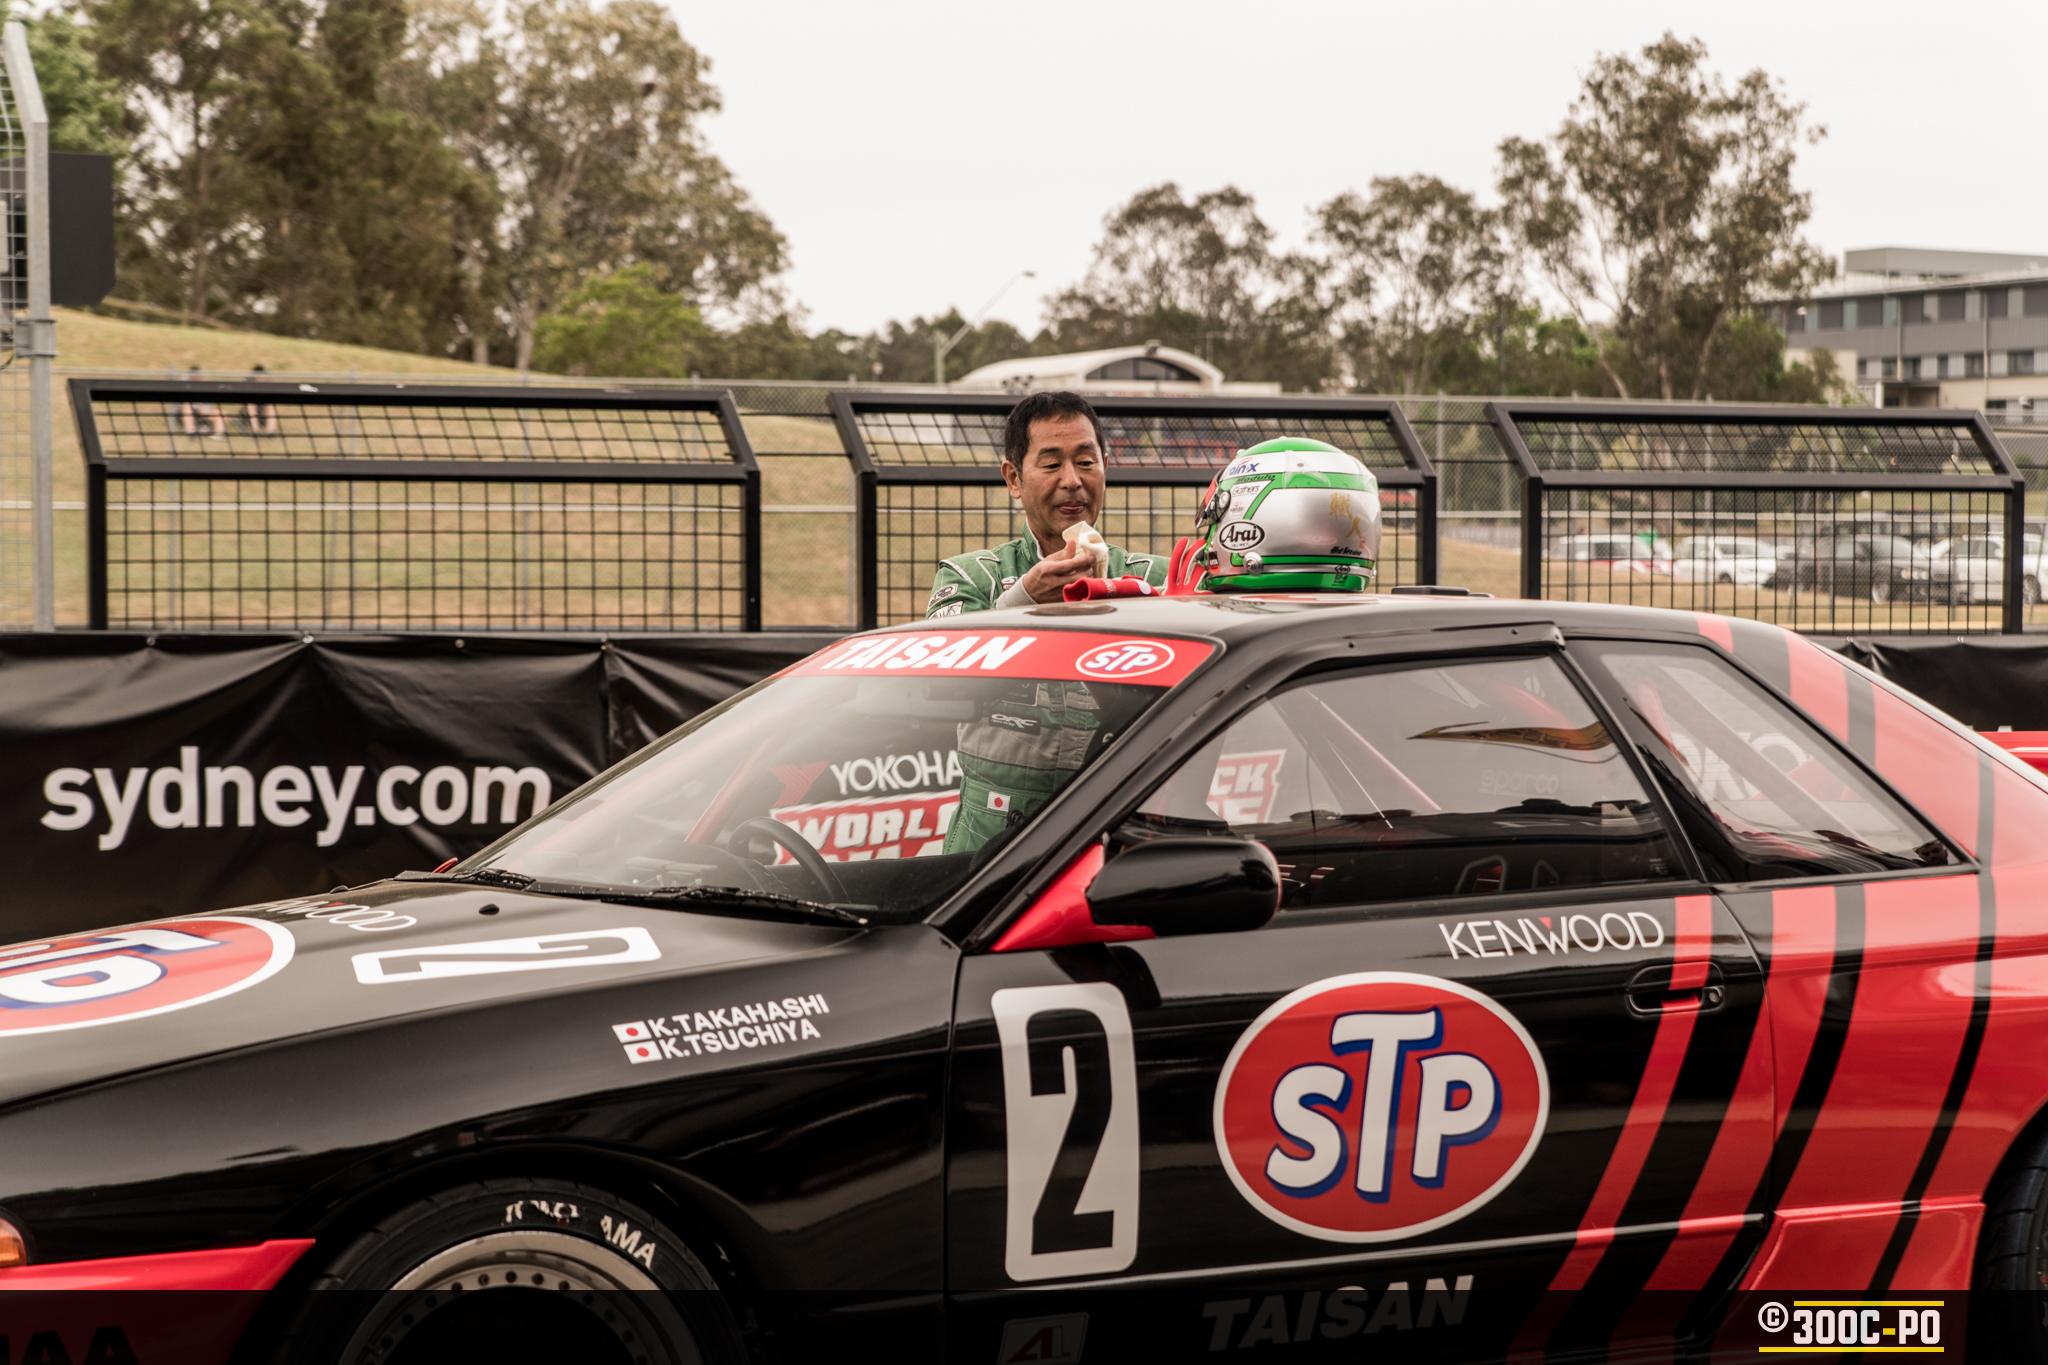 2017-10-14 - WTAC 2017 Day 02 146